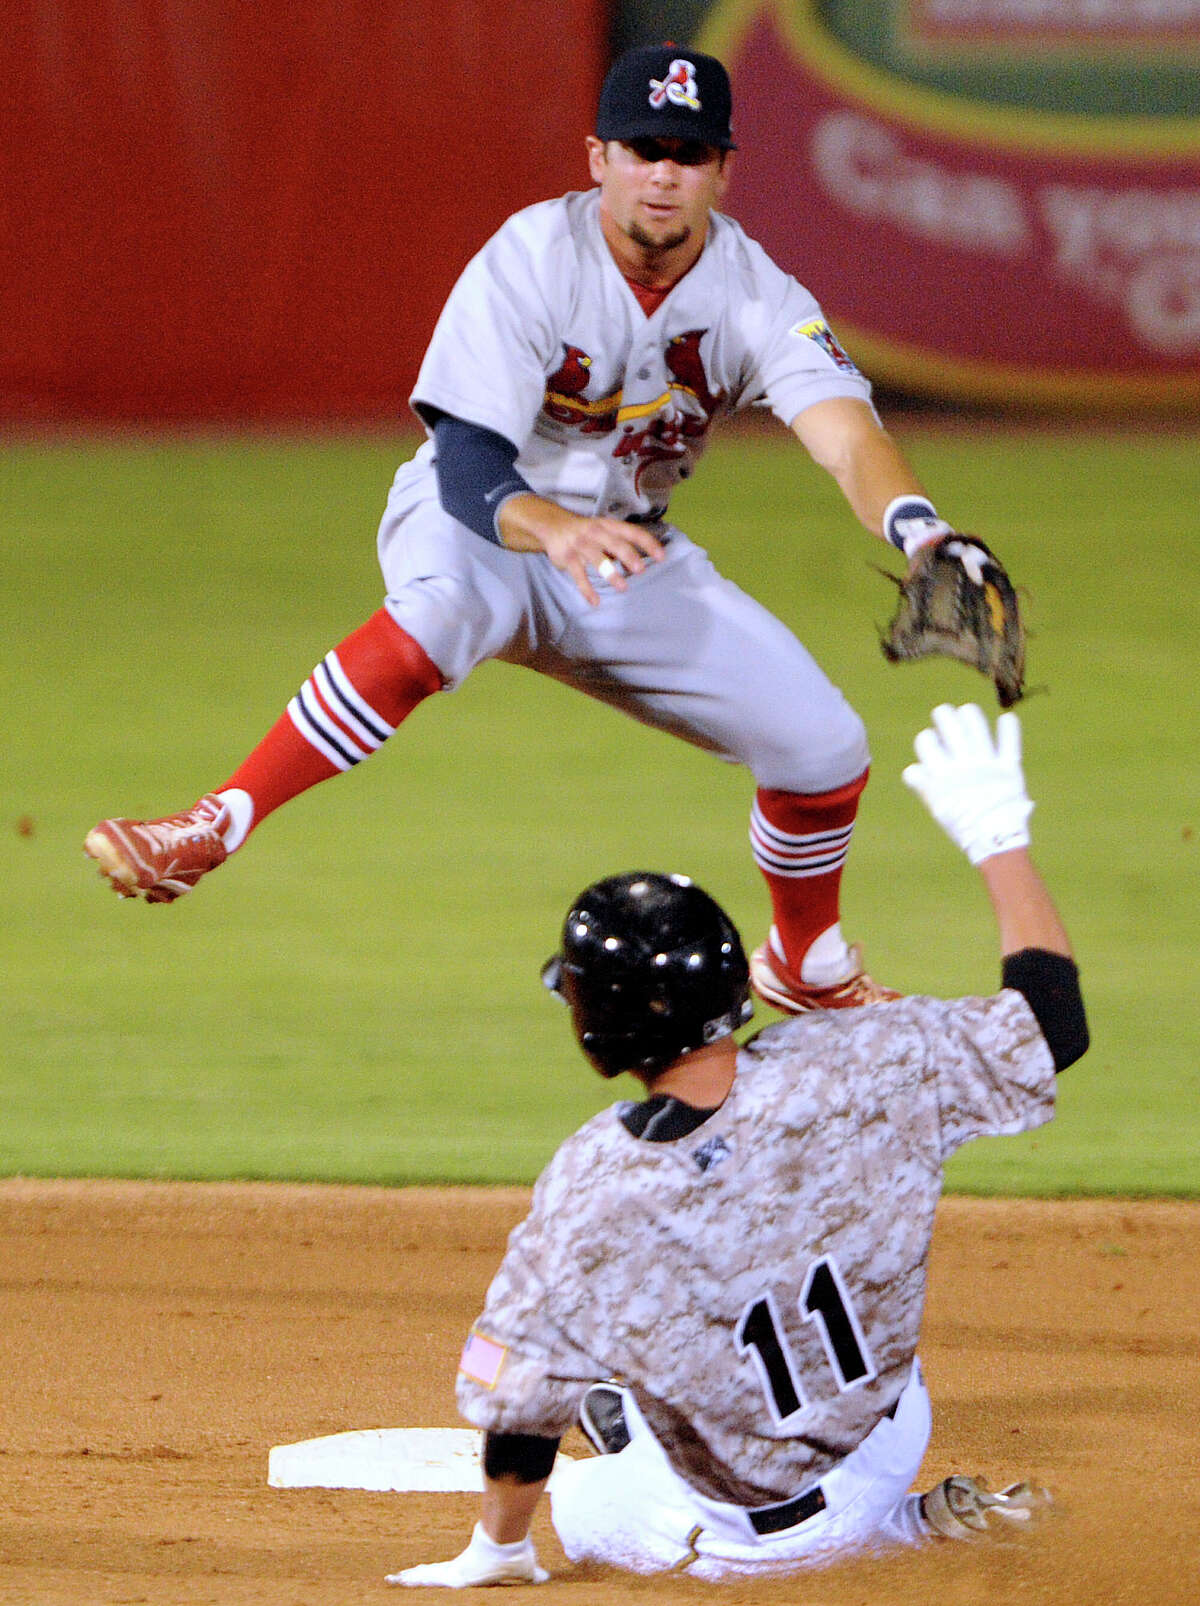 Springfield Cardinals shortstop Greg Garcia jumps to avoid Dean Anna of the San Antonio Missions as he turns a double play during Texas League baseball action at Wolff Stadium on Wednesday, May 23, 2012.